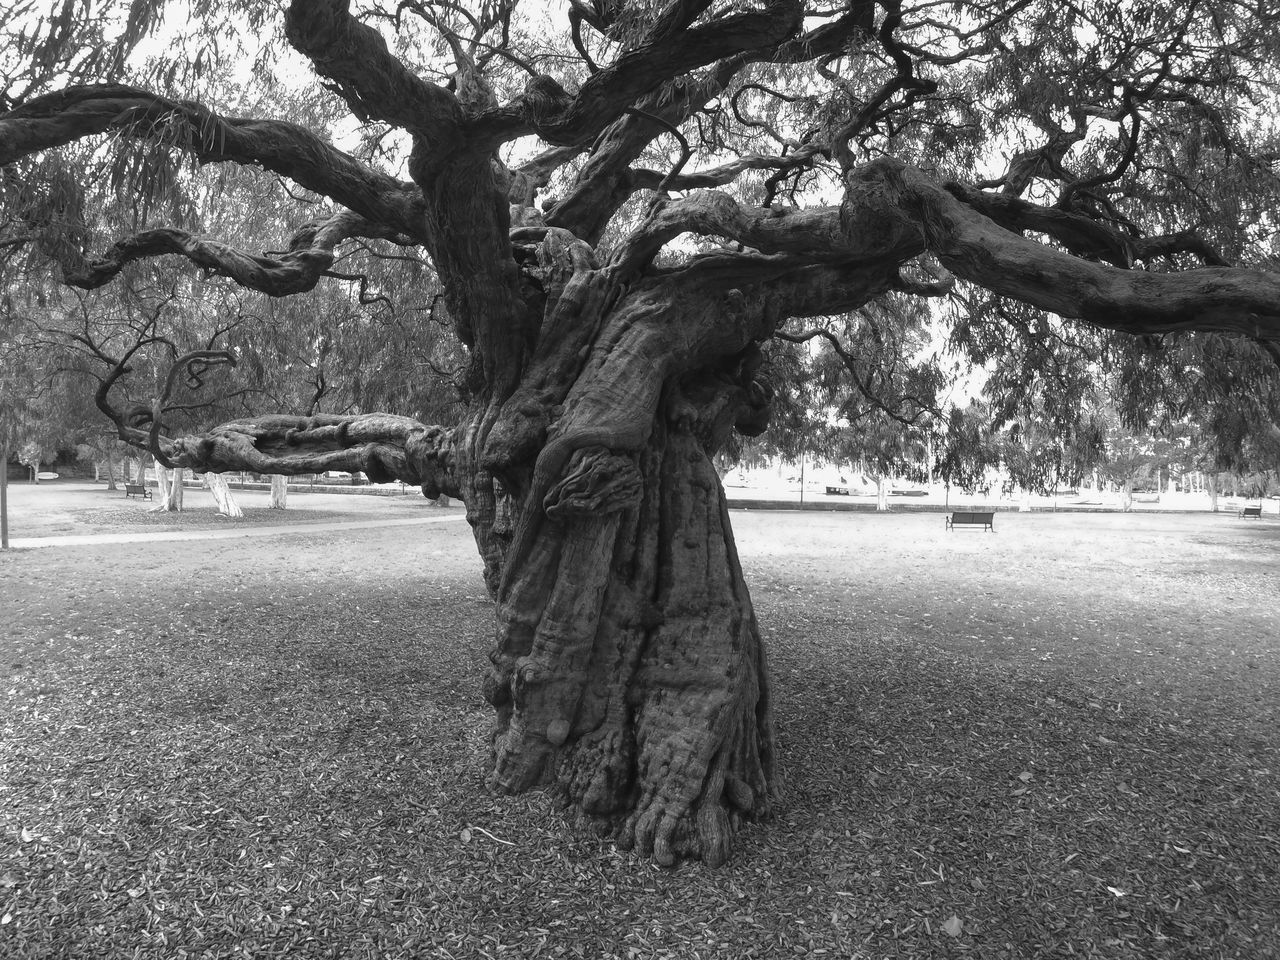 tree, plant, tree trunk, trunk, nature, day, growth, outdoors, park, full length, field, land, real people, grass, park - man made space, transportation, standing, one person, beauty in nature